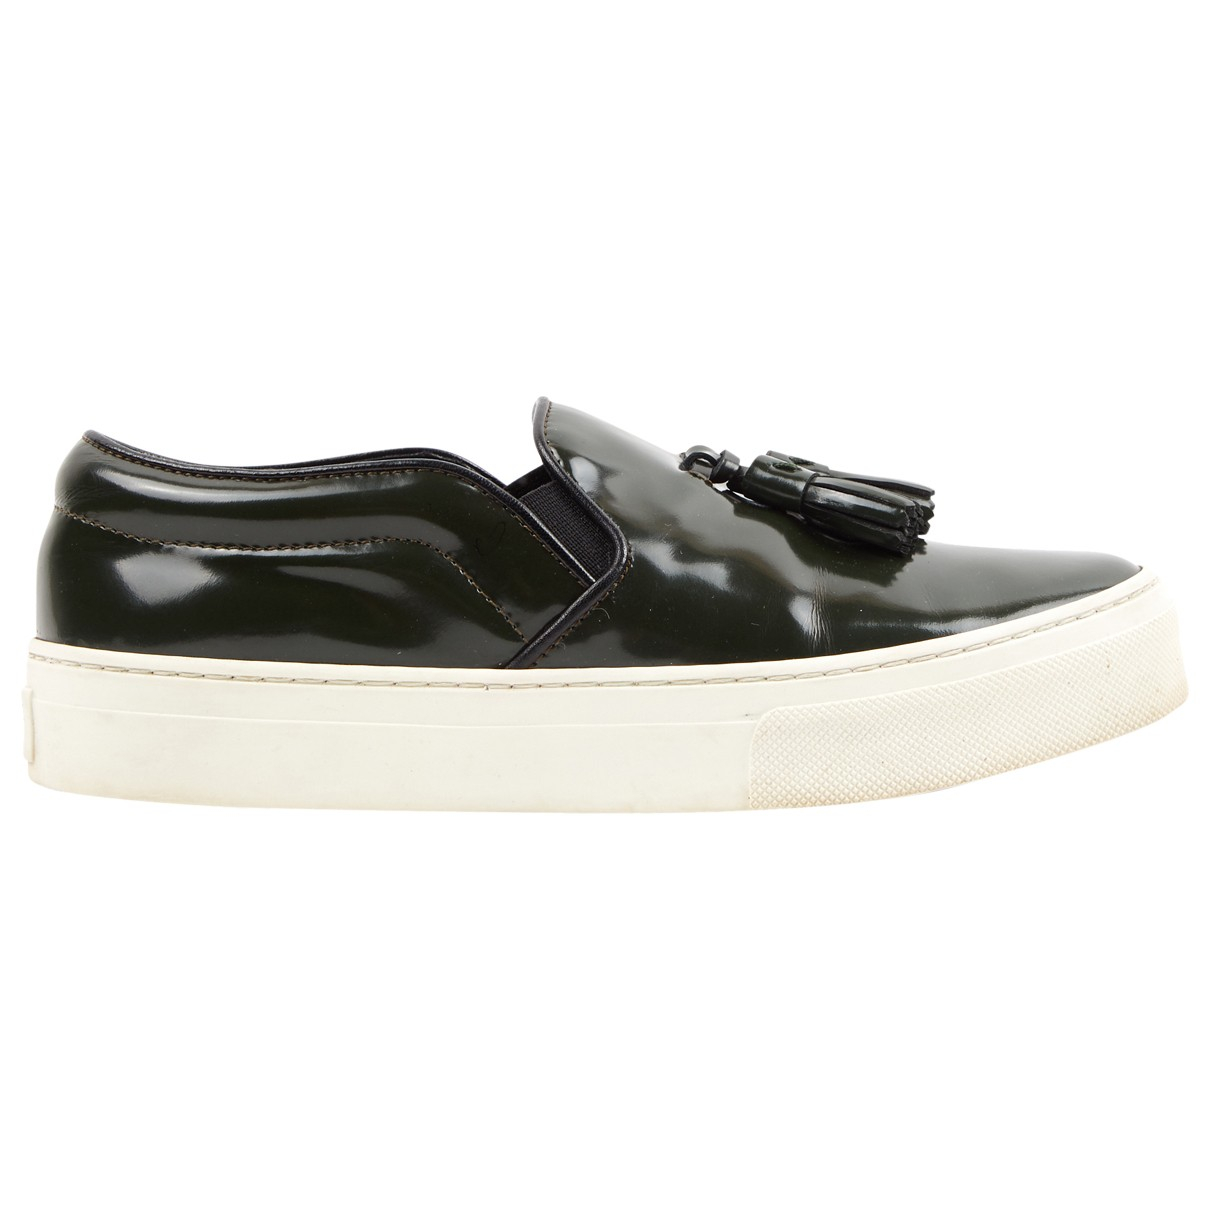 Celine \N Green Patent leather Trainers for Women 36 EU